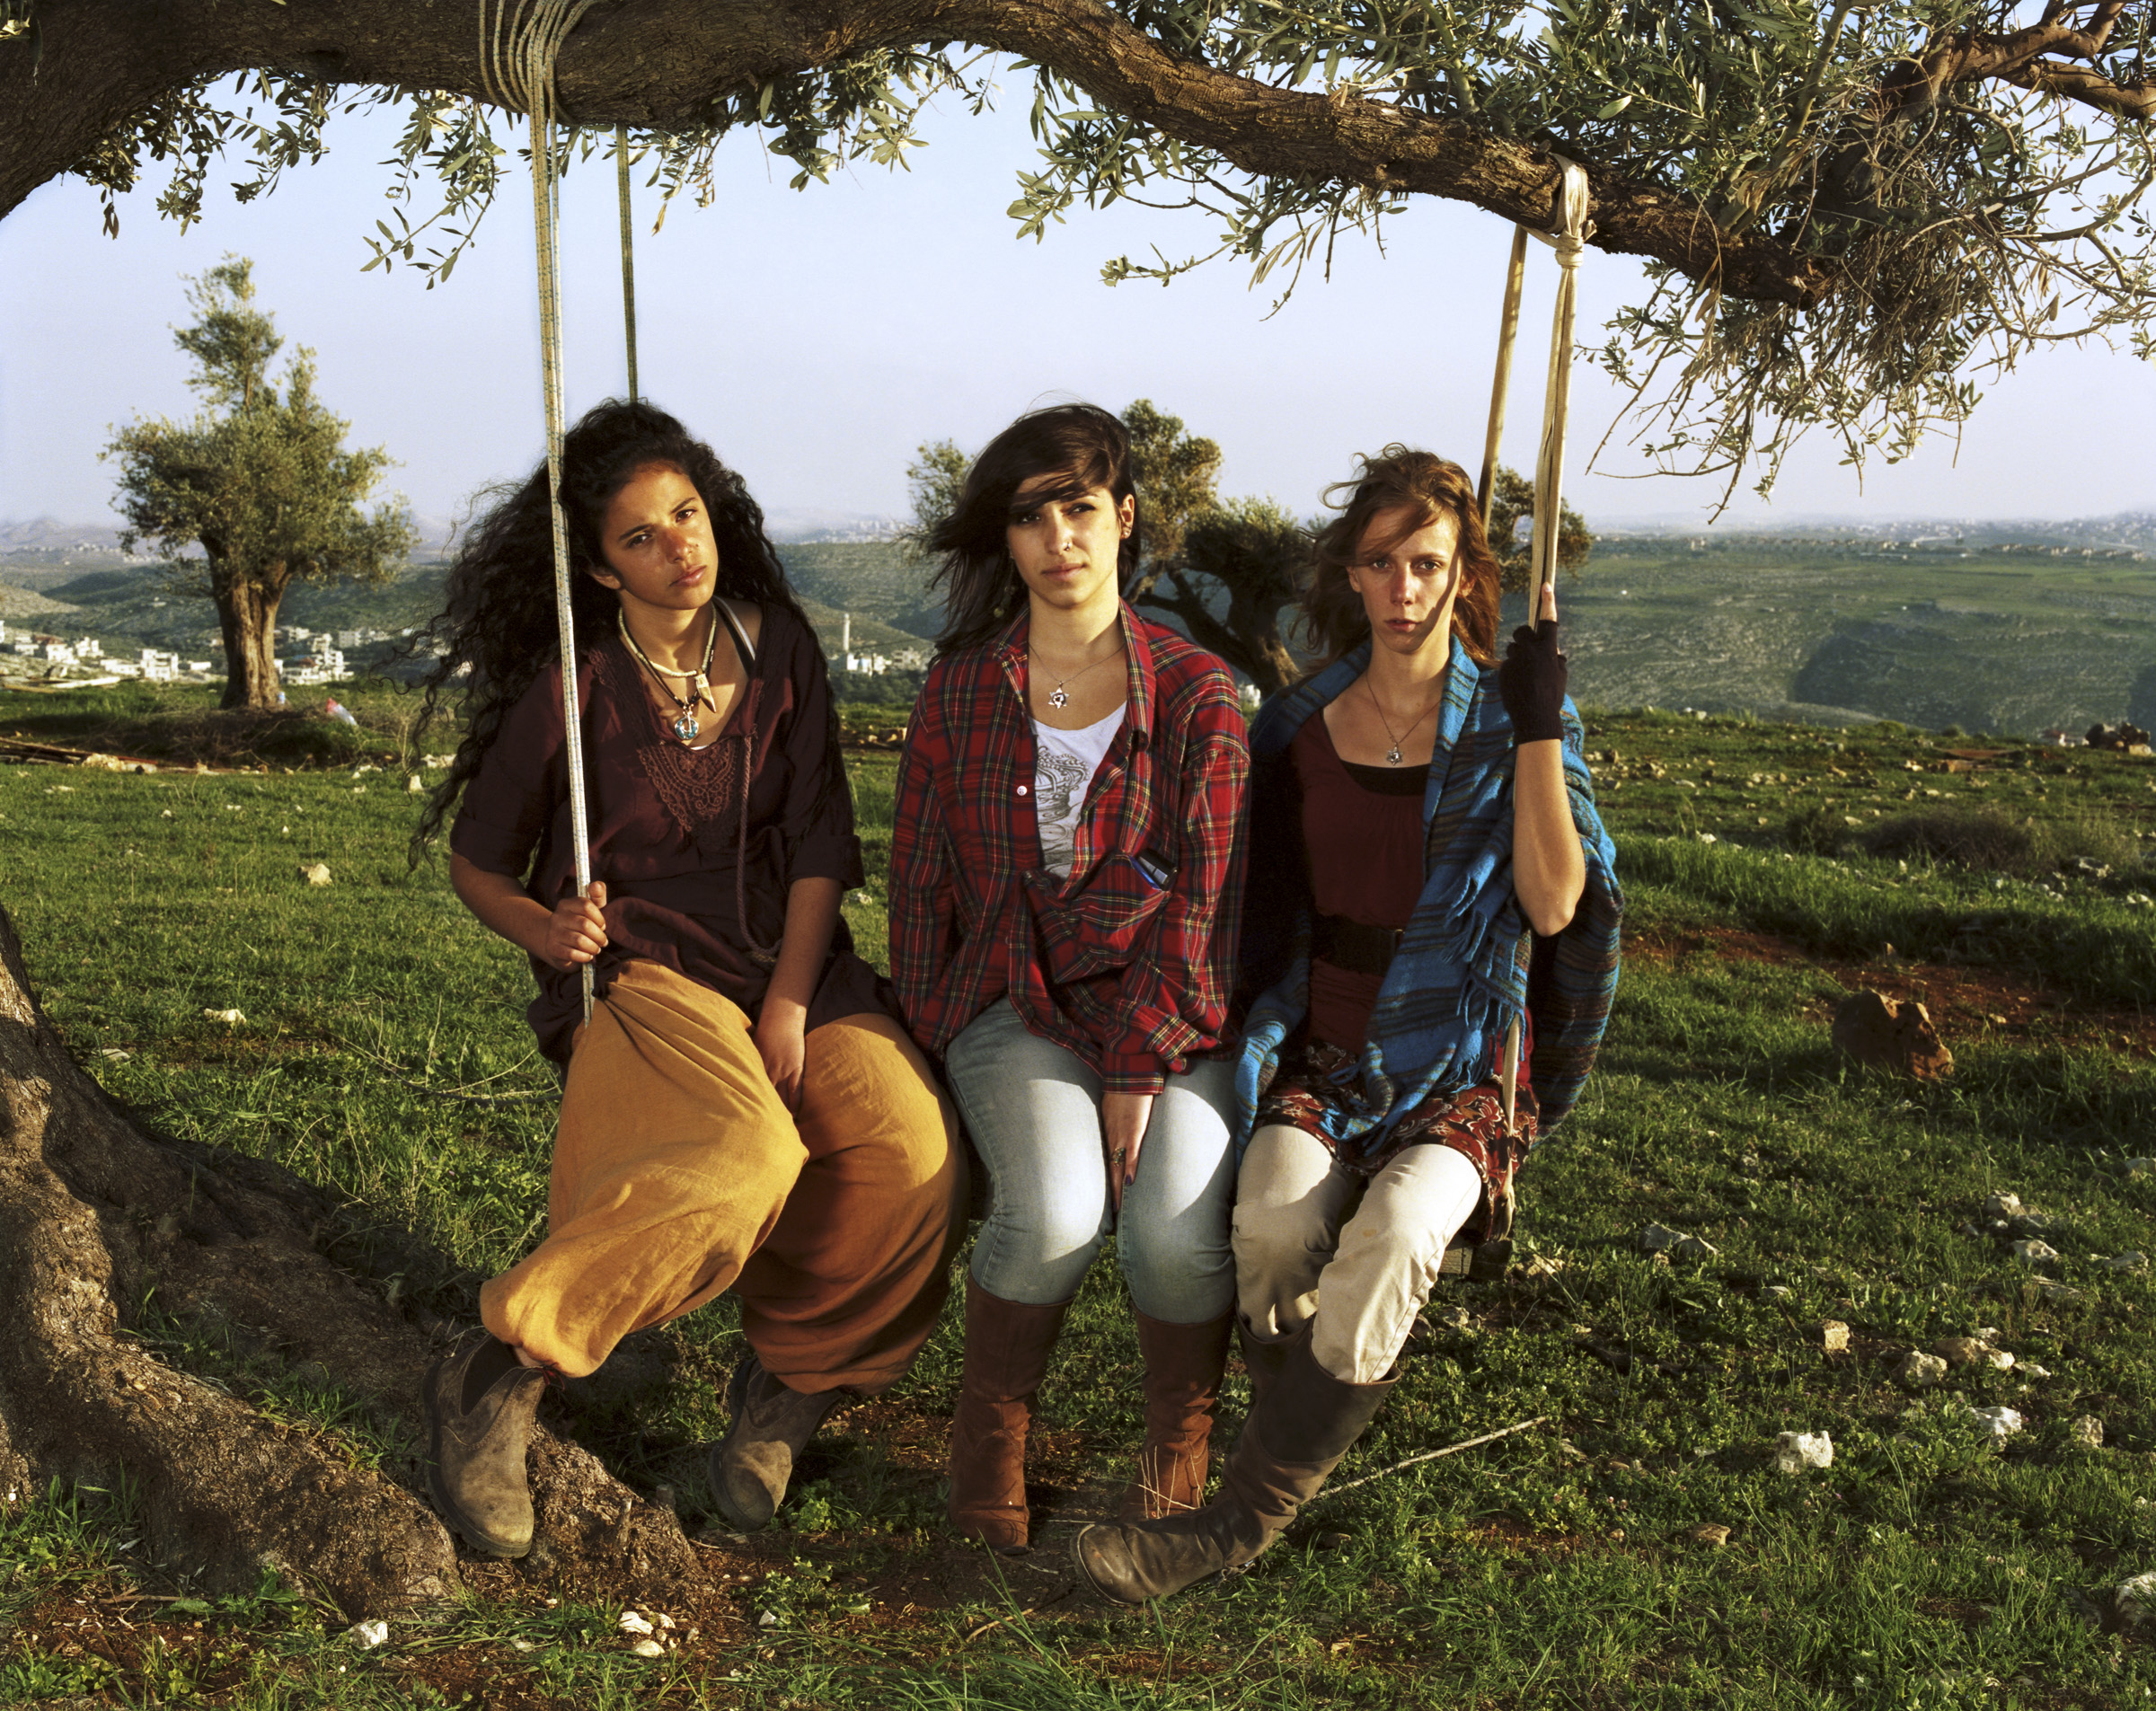 Bat El, Moriya and Chaya, 2011   For Bat El, Moriya and Chaya, hiking up to the hilltop outpost in Migron is a political act, but it also has the feeling of a simple teenage hangout—someplace far away from adults. Their way of protest is to build.